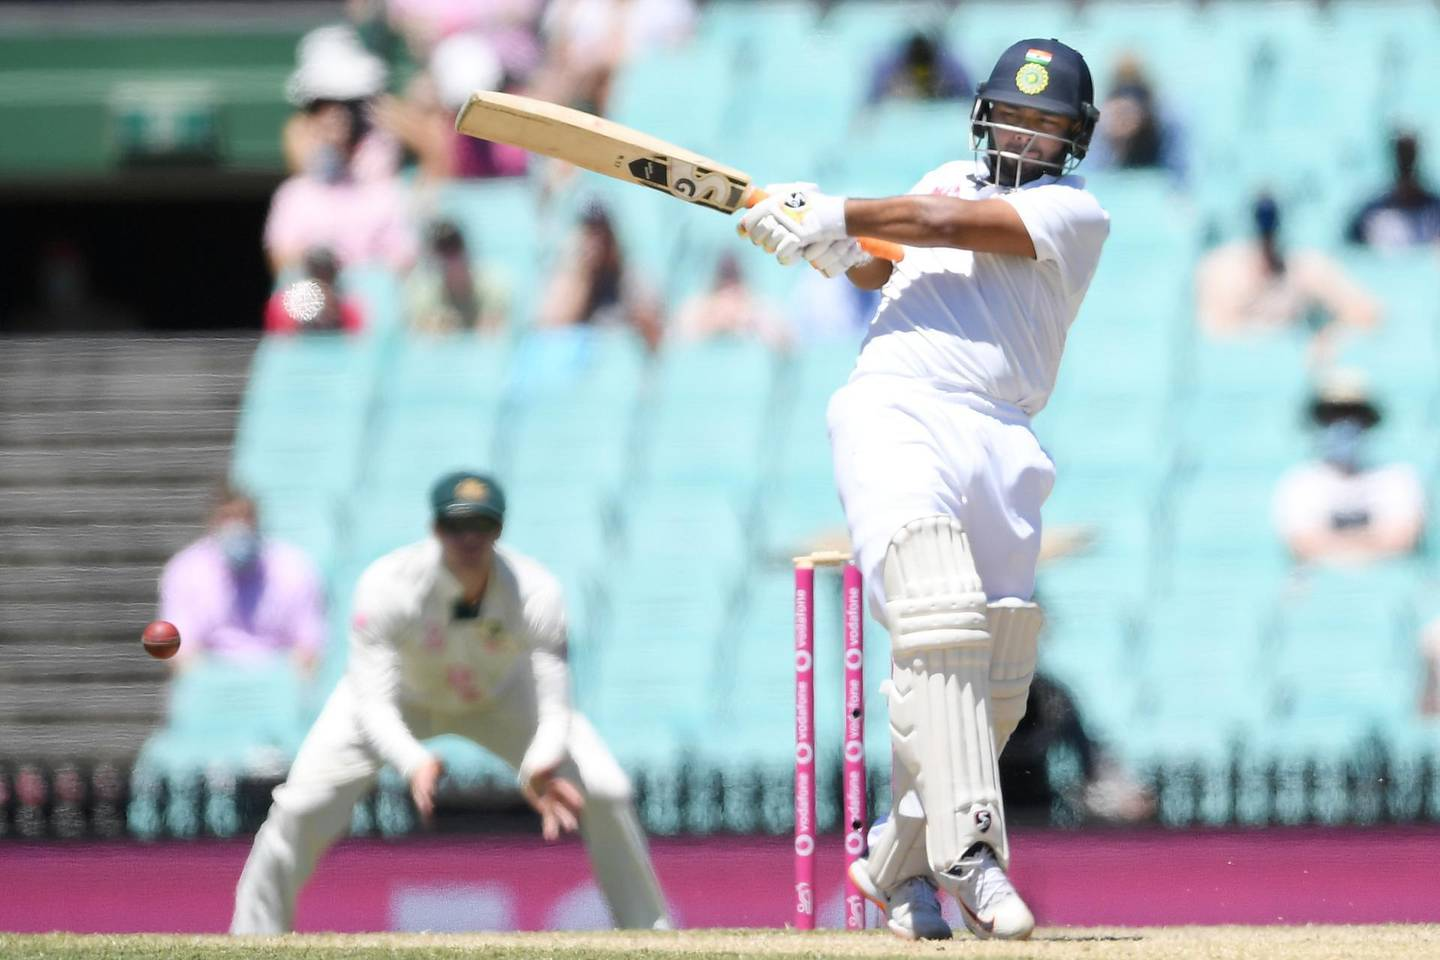 Rishabh Pant of India hits for 4 runs during the final day of the third test match between Australia and India at the SCG, Sydney, Australia, January 11, 2021. AAP Image/Dean Lewins via REUTERS  ATTENTION EDITORS - THIS IMAGE WAS PROVIDED BY A THIRD PARTY. NO RESALES. NO ARCHIVE. AUSTRALIA OUT. NEW ZEALAND OUT